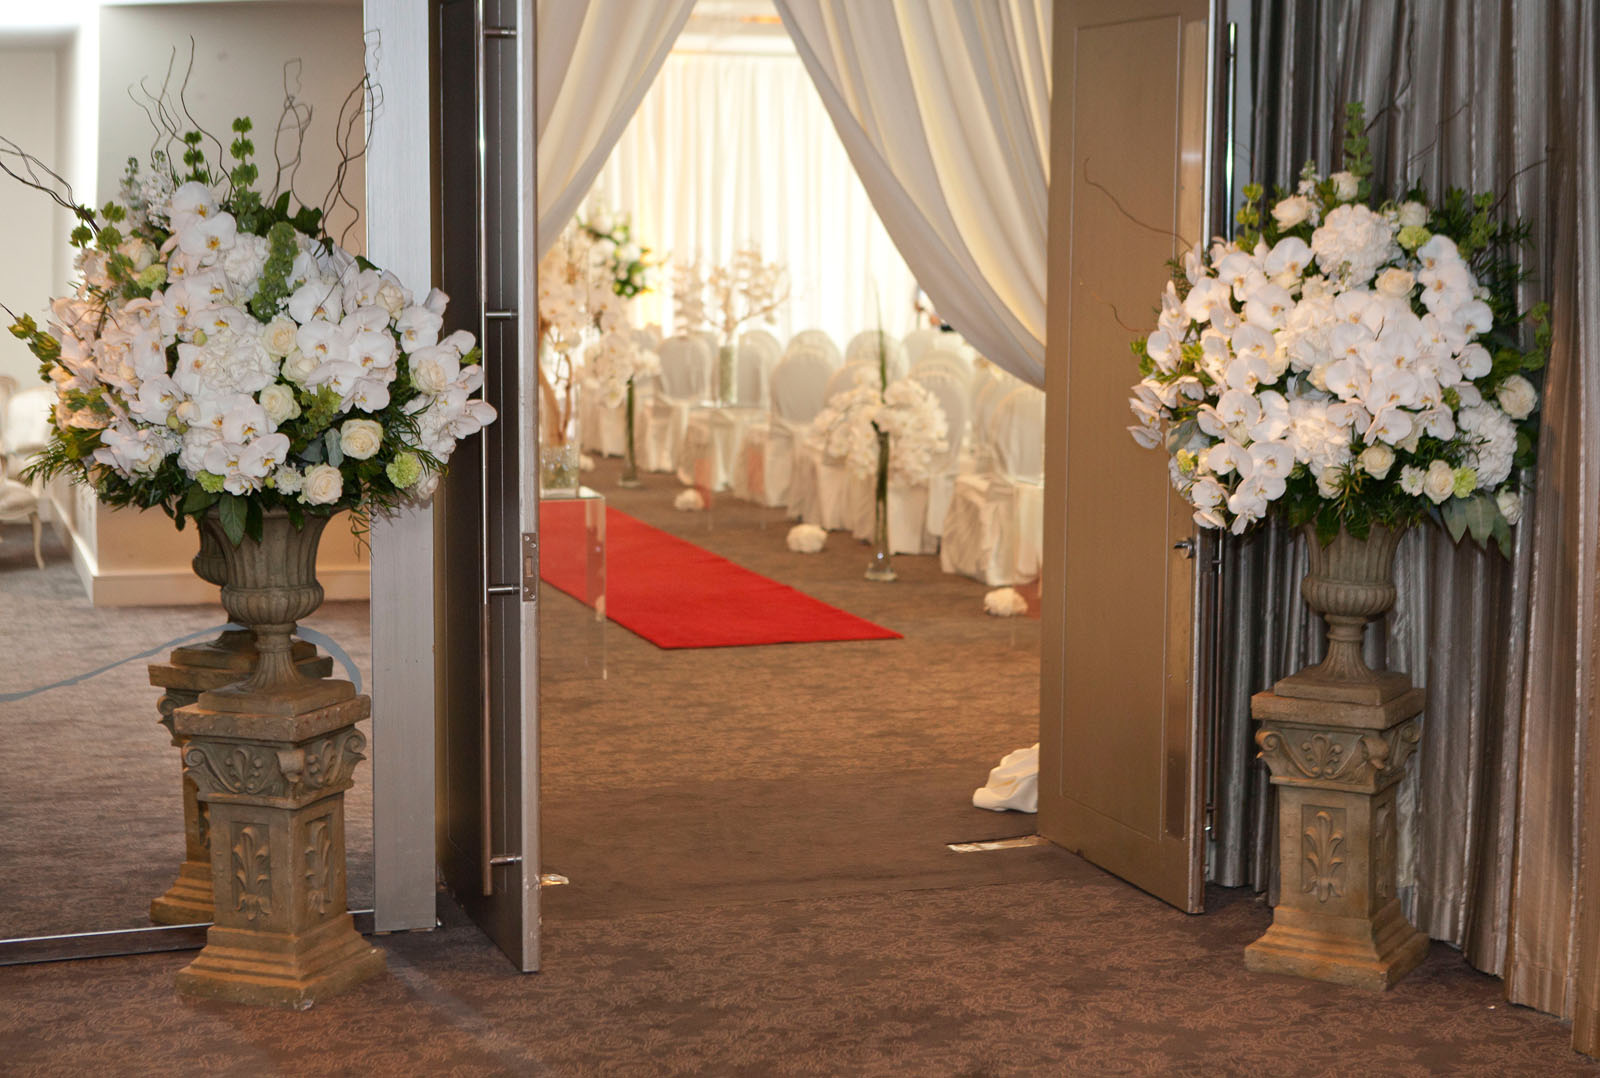 Carton House, Pipe and Drape, Classic Green White Pedestal & Urn Arrangement